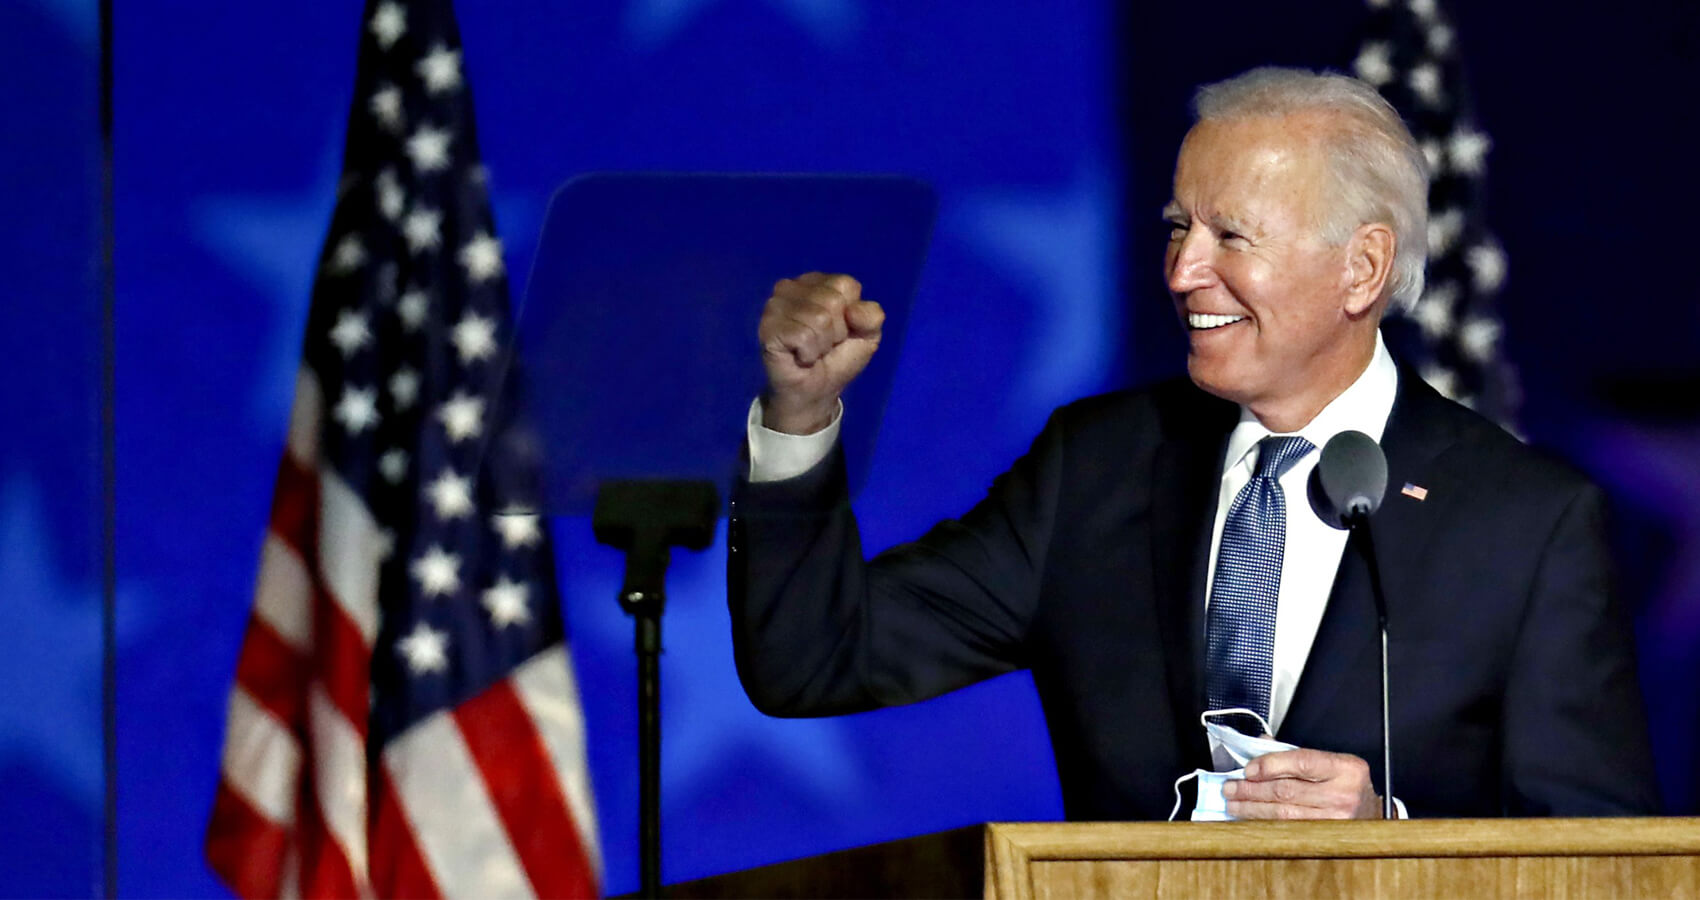 Under Biden, The United States Should Be There For Its Neighbors In The Western Hemisphere